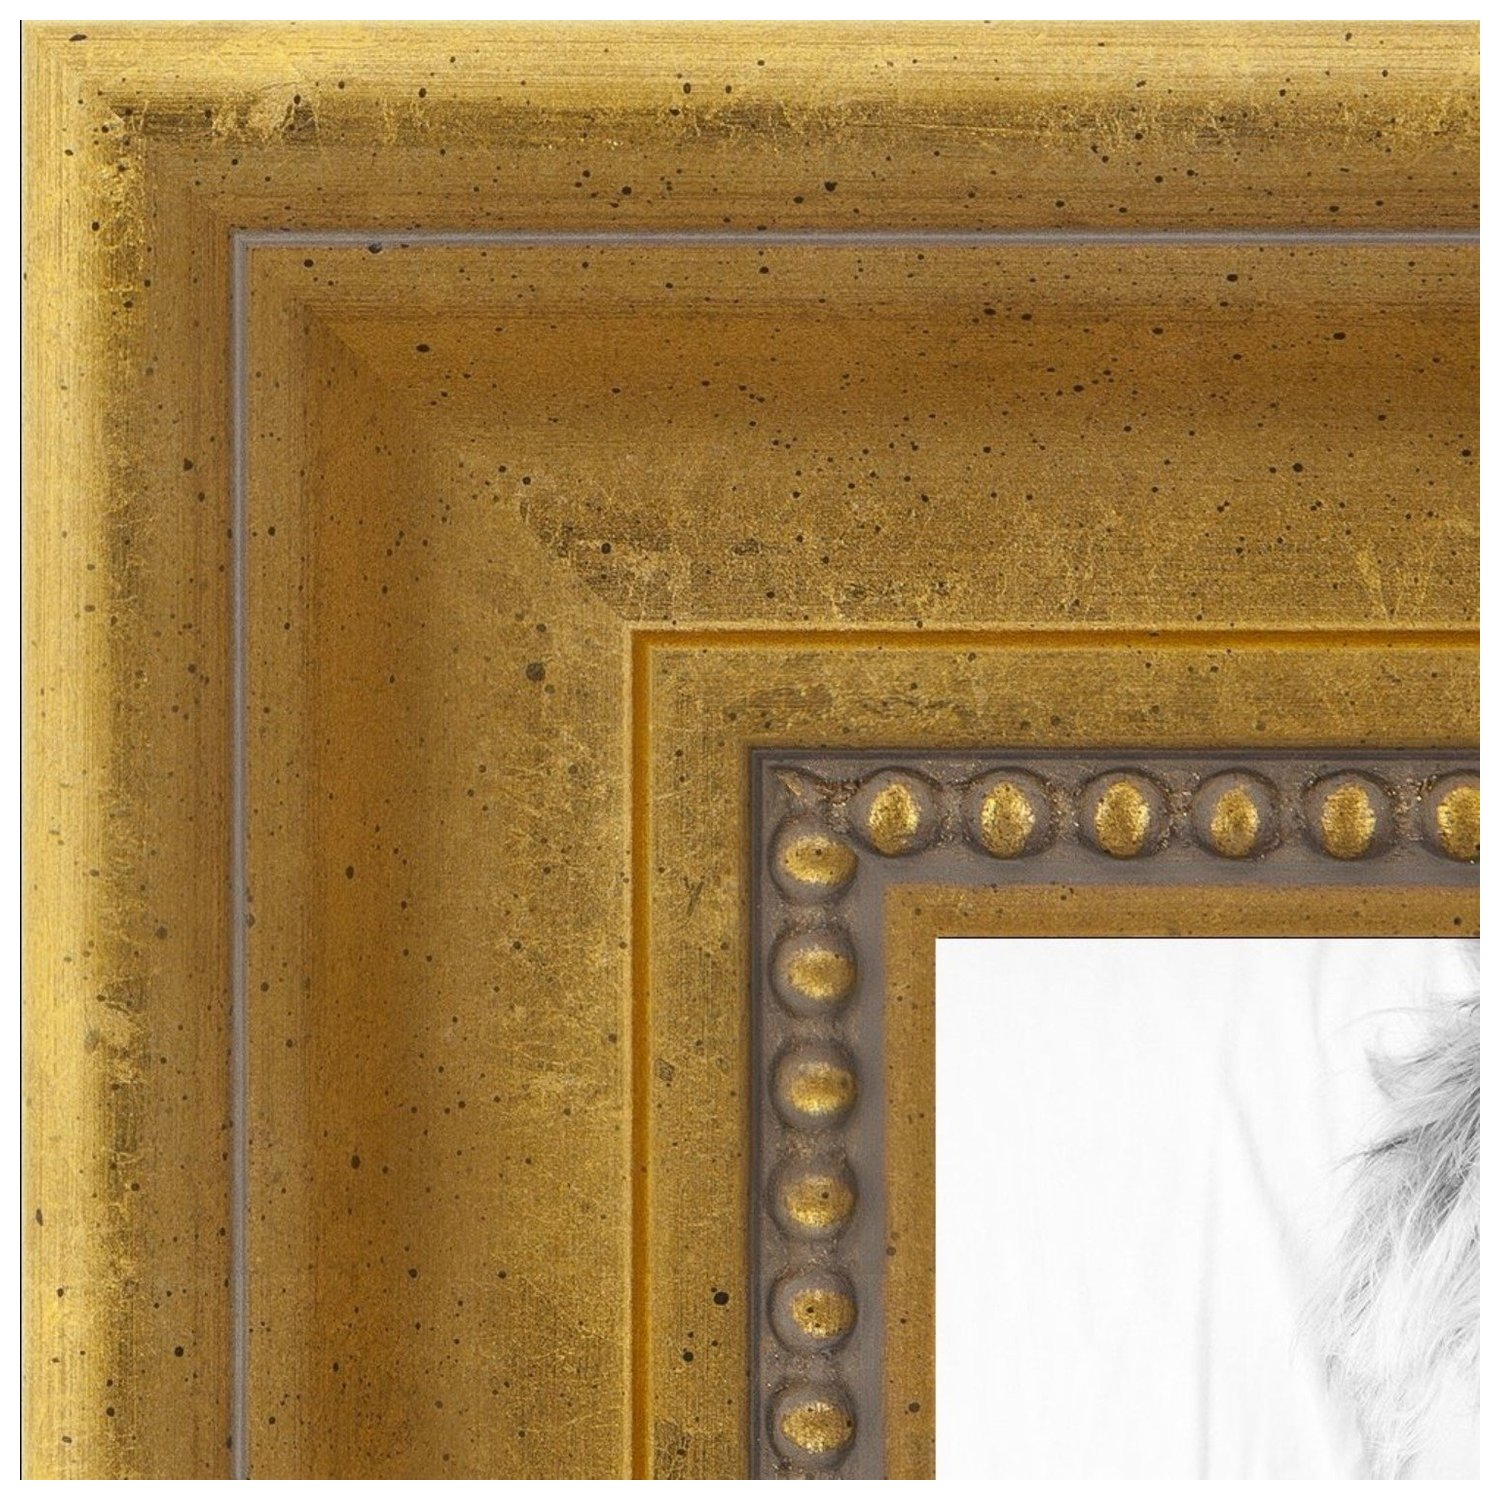 arttoframes 13x19 inch gold picture frame this gold wood poster frame is great for your art or photos comes with 060 plexi glass 2035